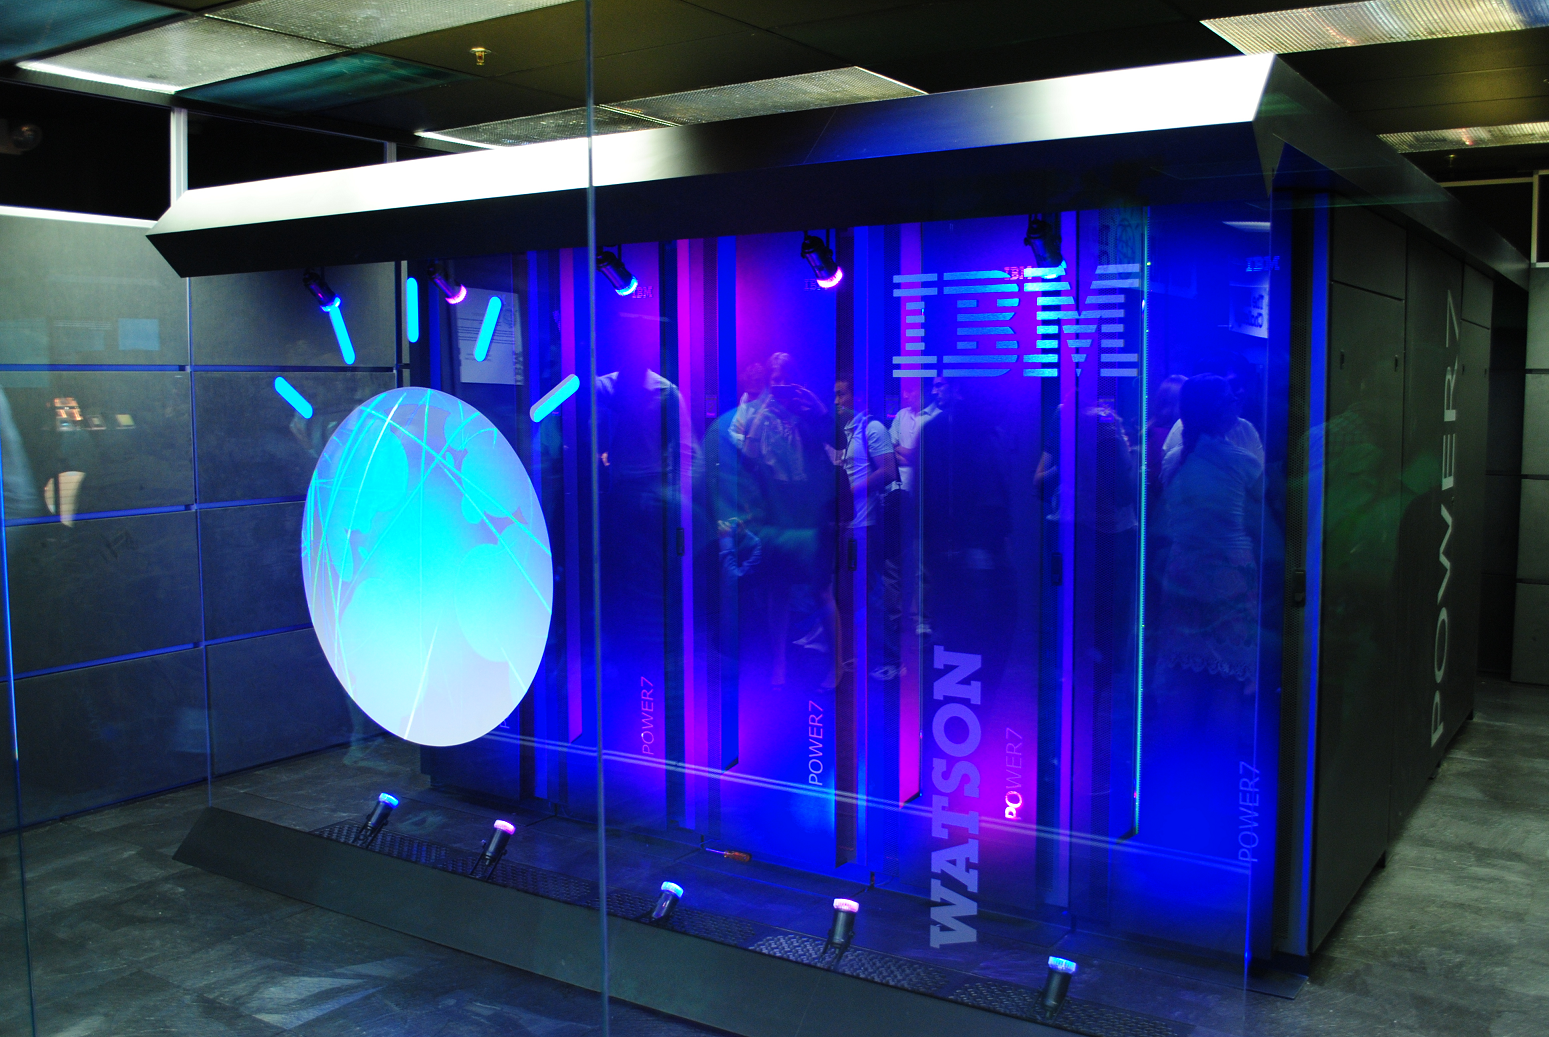 IBM will invest $240 million to create the MIT–IBM Watson AI Lab in a 10-year partnership with the MIT with the goal of propelling scientific breakthroughs that unlock the potential of AI. - Photo:Clockready / Wikimedia Commons.